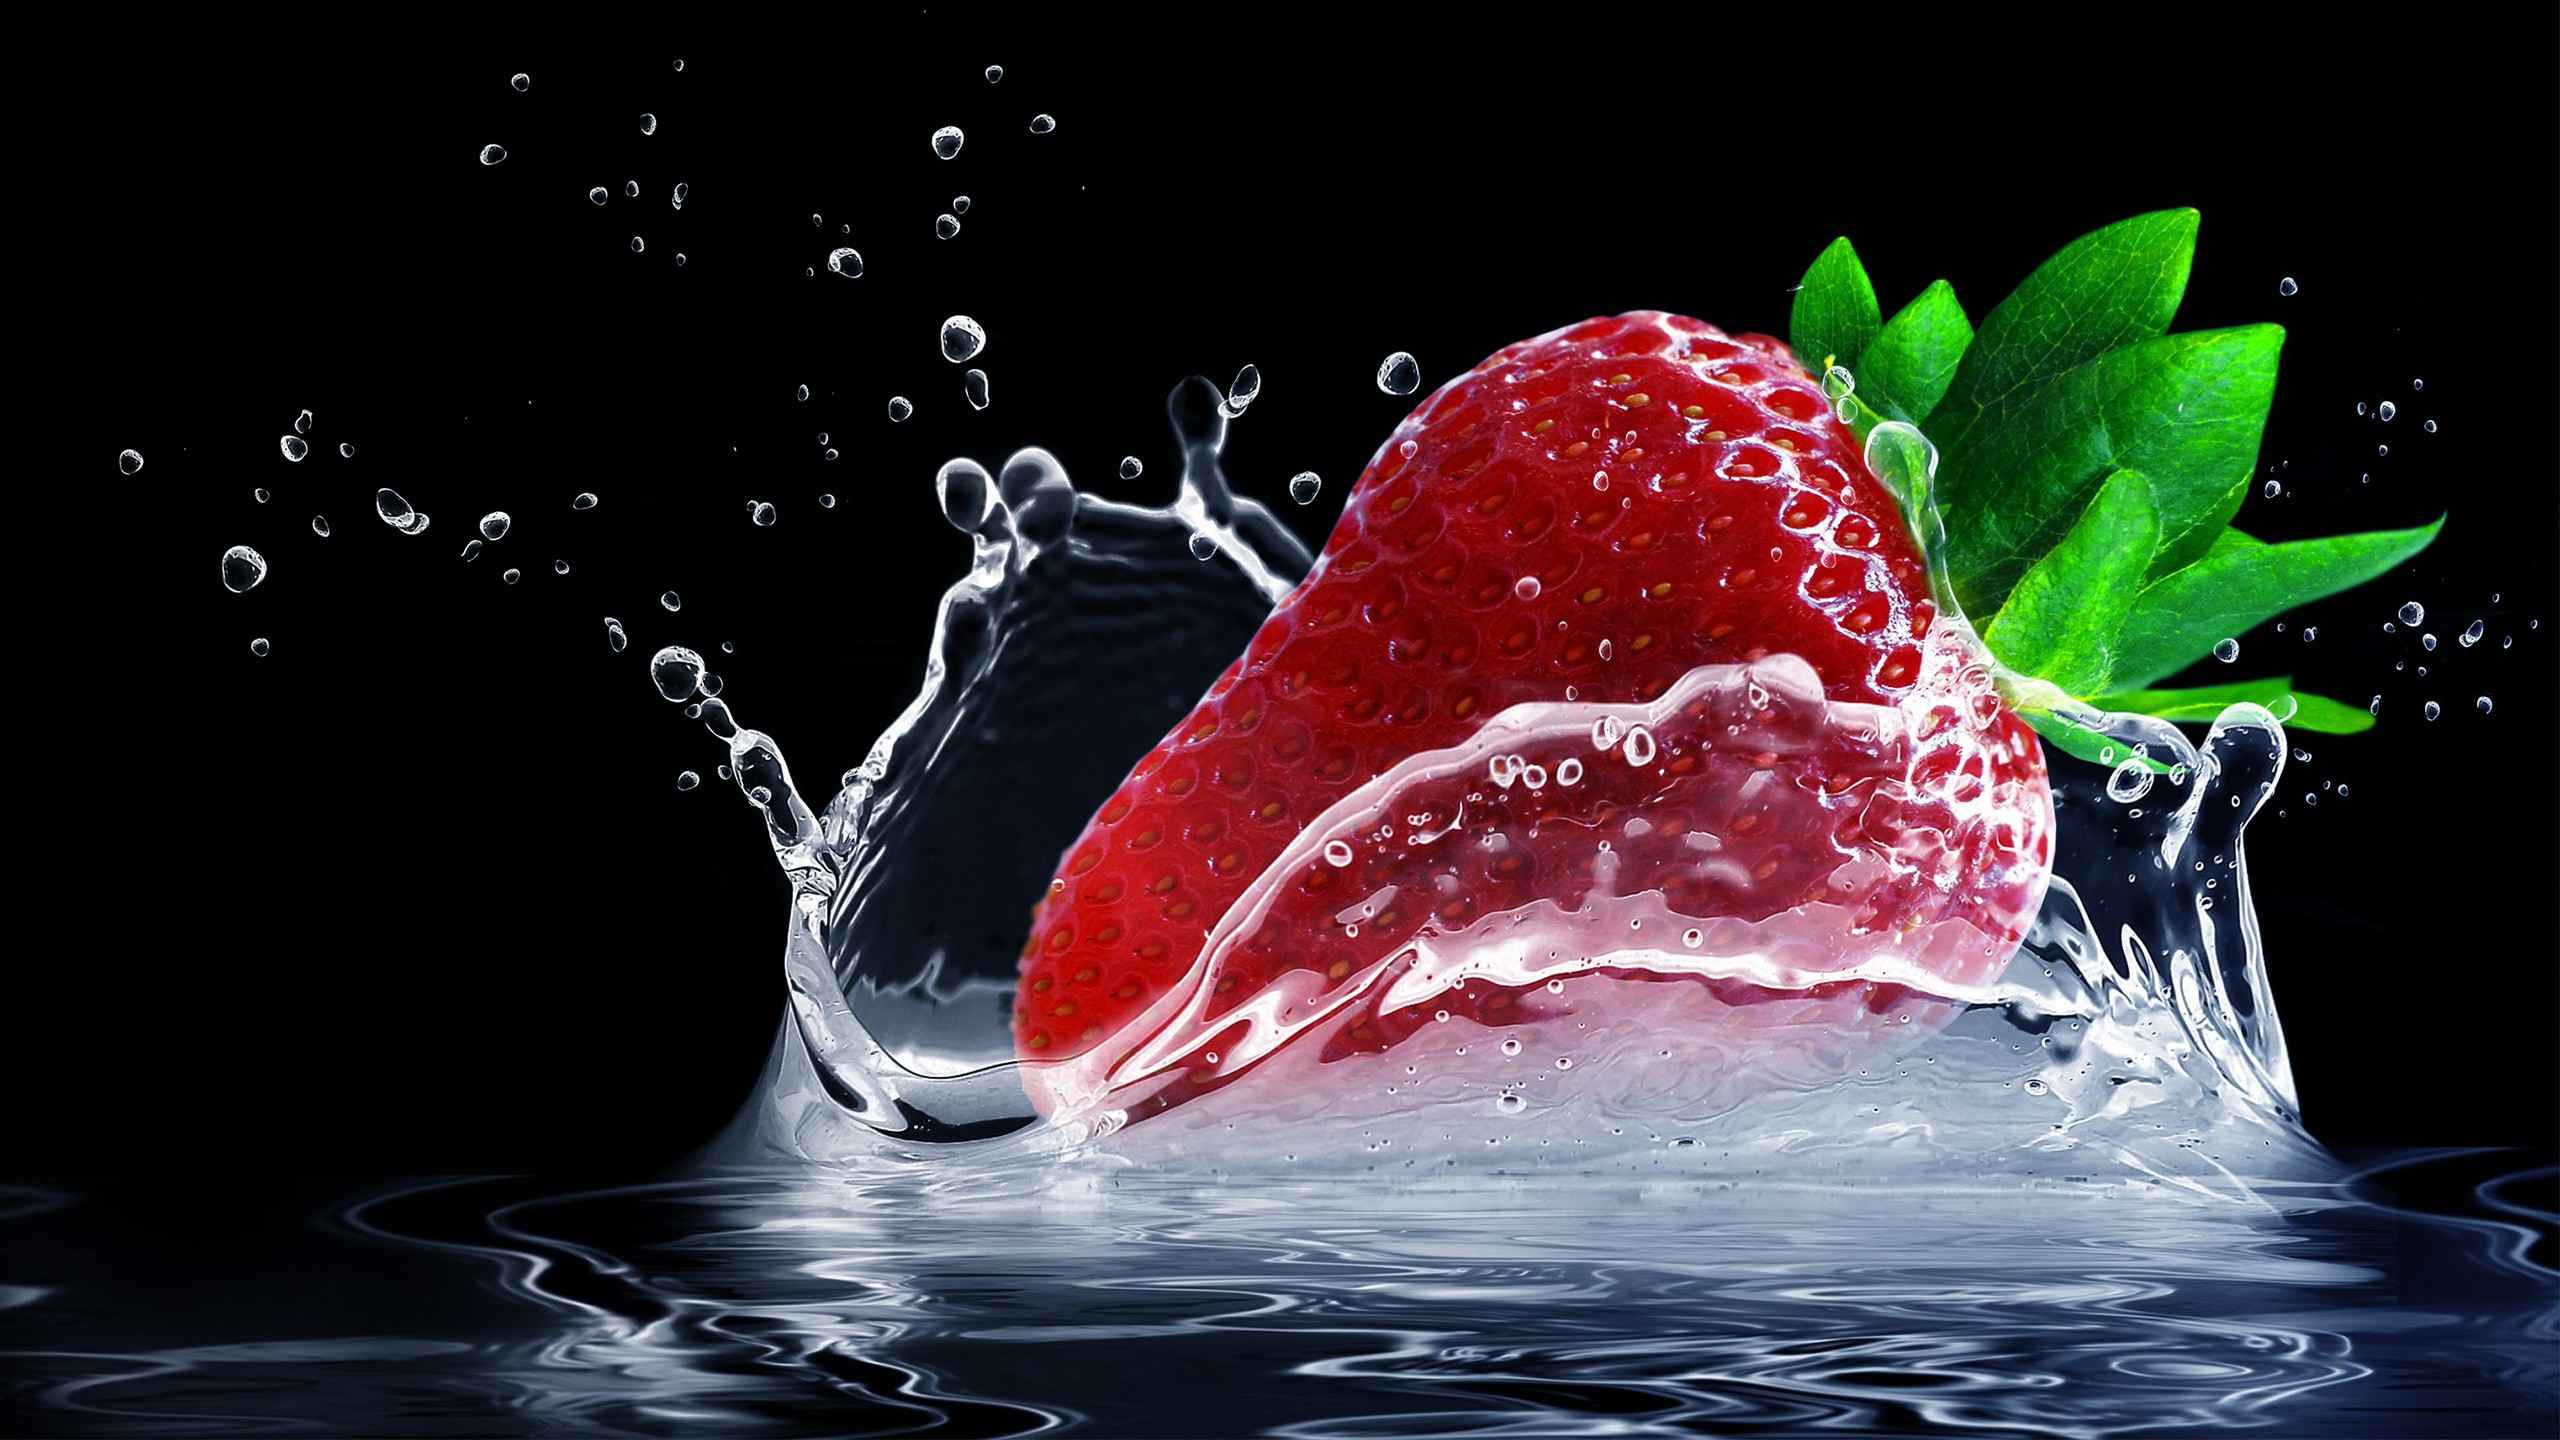 Download Cute Wallpapers For Pc Strawberry Water Splash Wallpapers Hd Wallpapers Id 20779